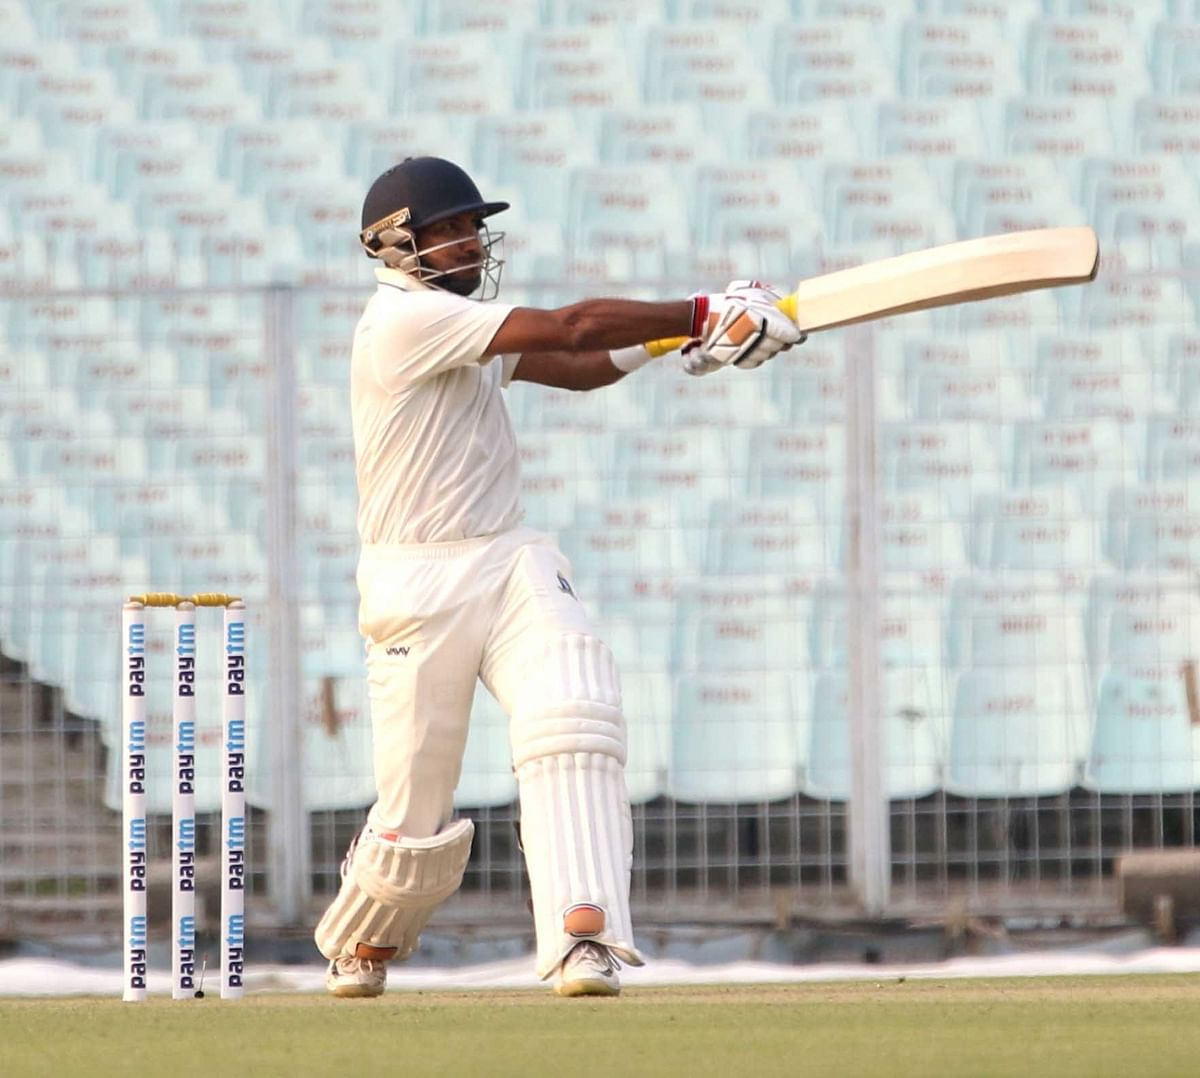 Ranji Final: Bengal stay in hunt for 1st innings lead against Saurashtra